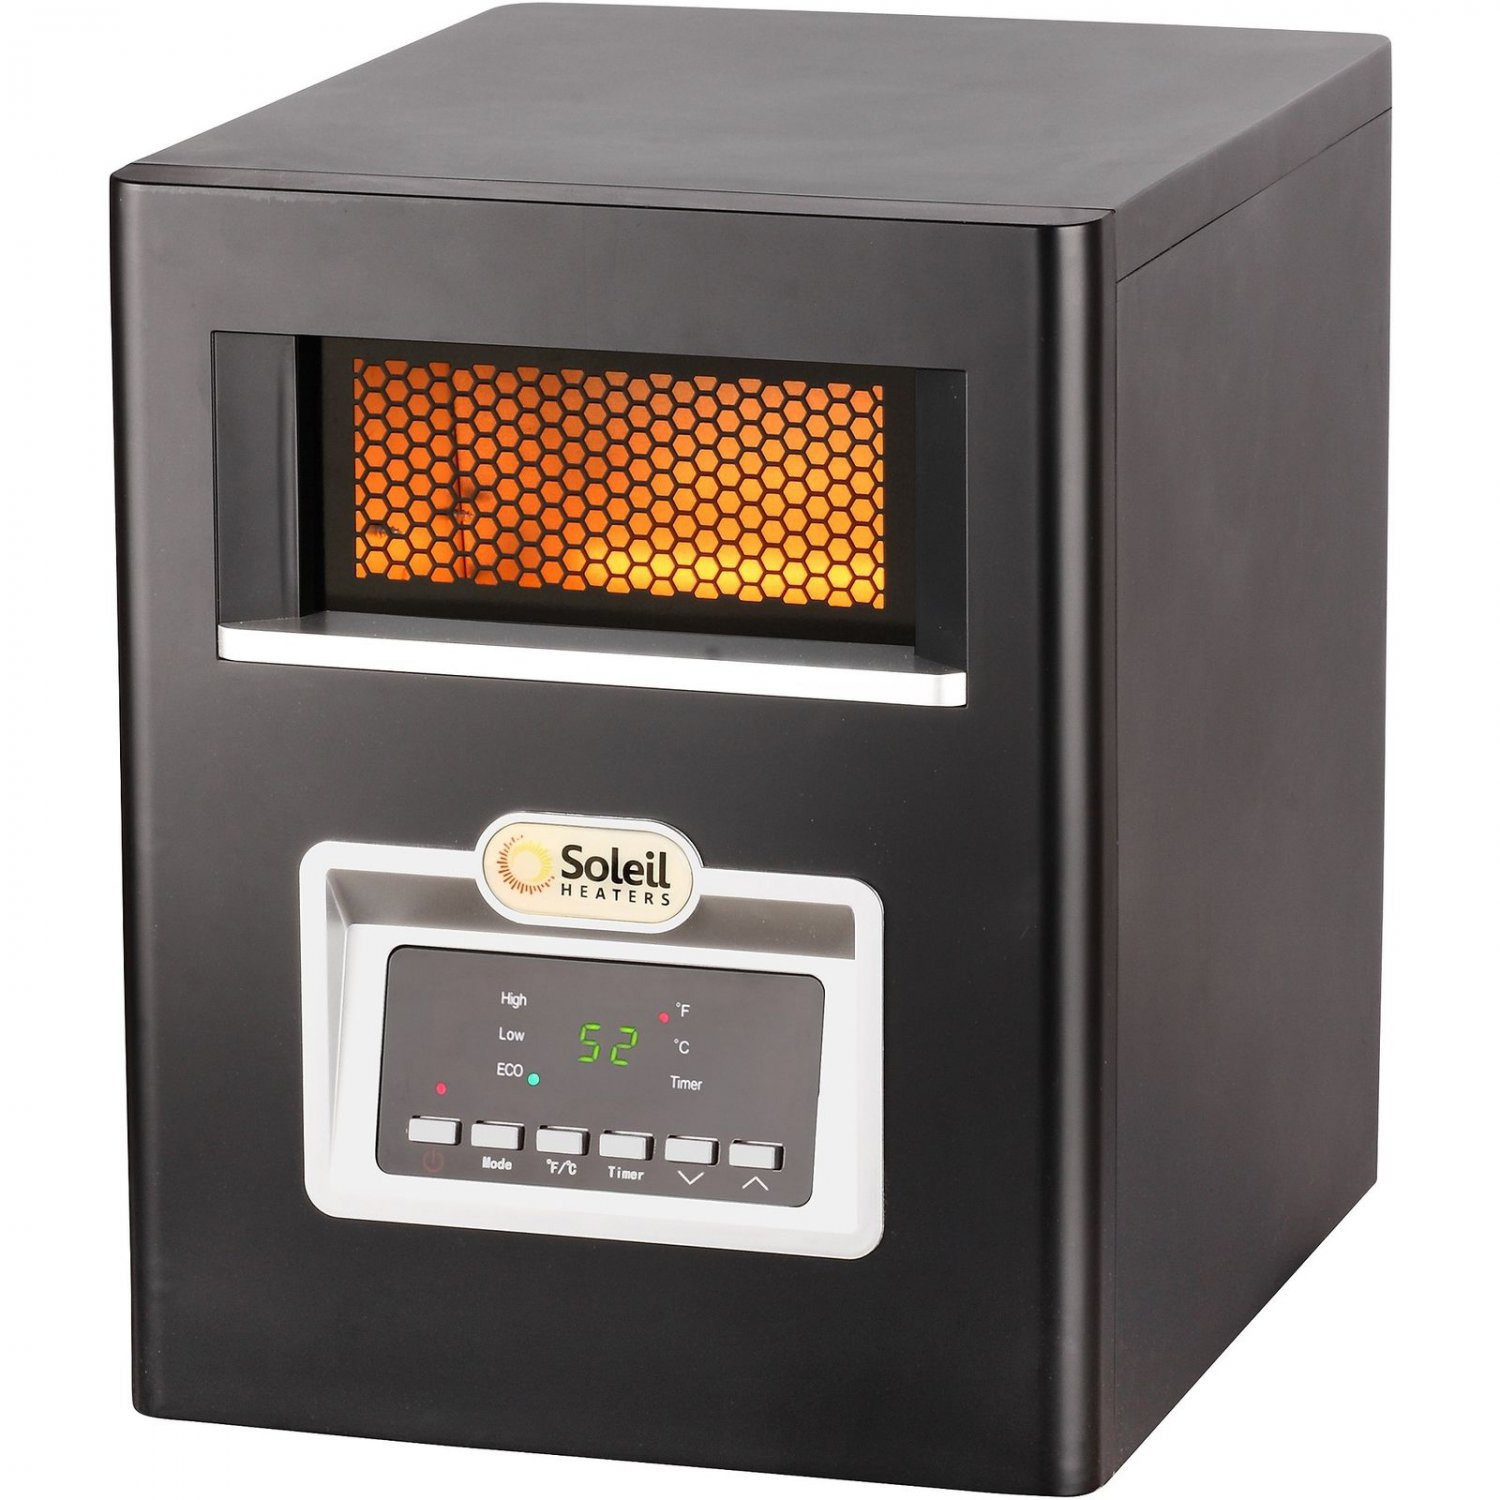 Soleil Electric Infrared Cabinet Space Heater 1500w Ph 91f